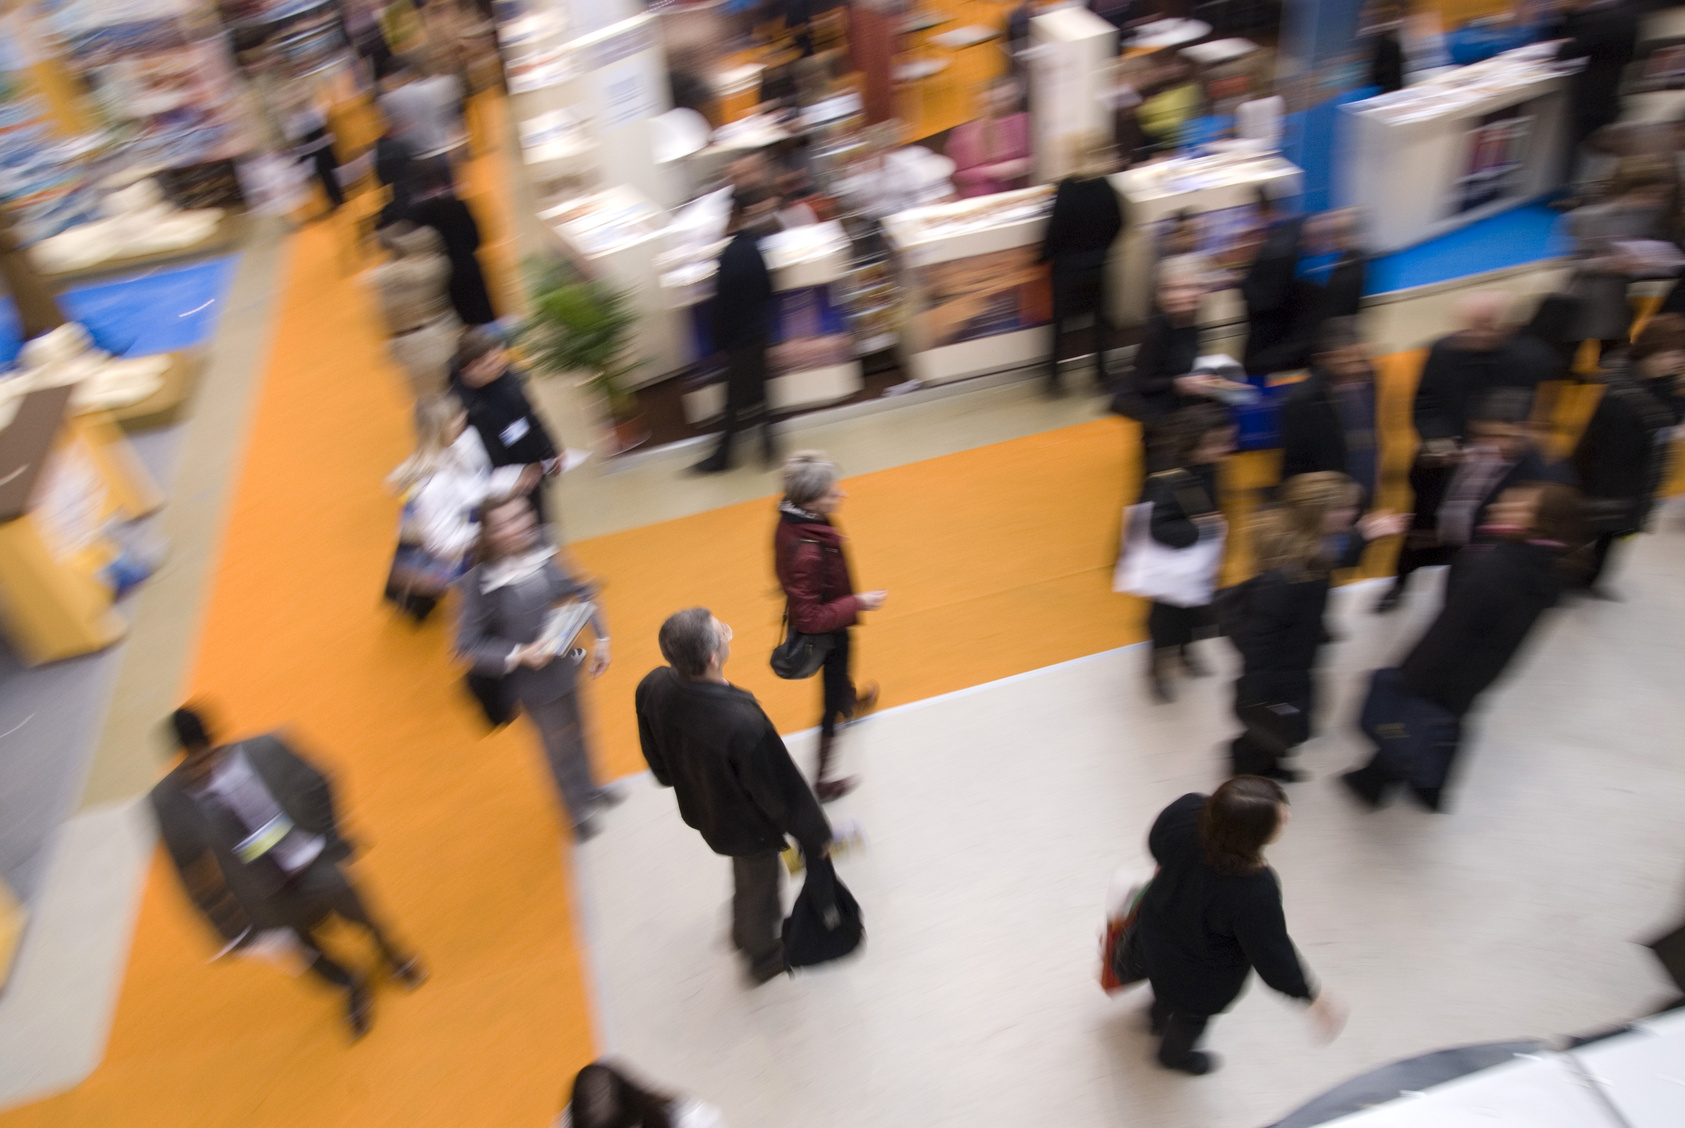 At an expo, what do you want visitors to focus on?